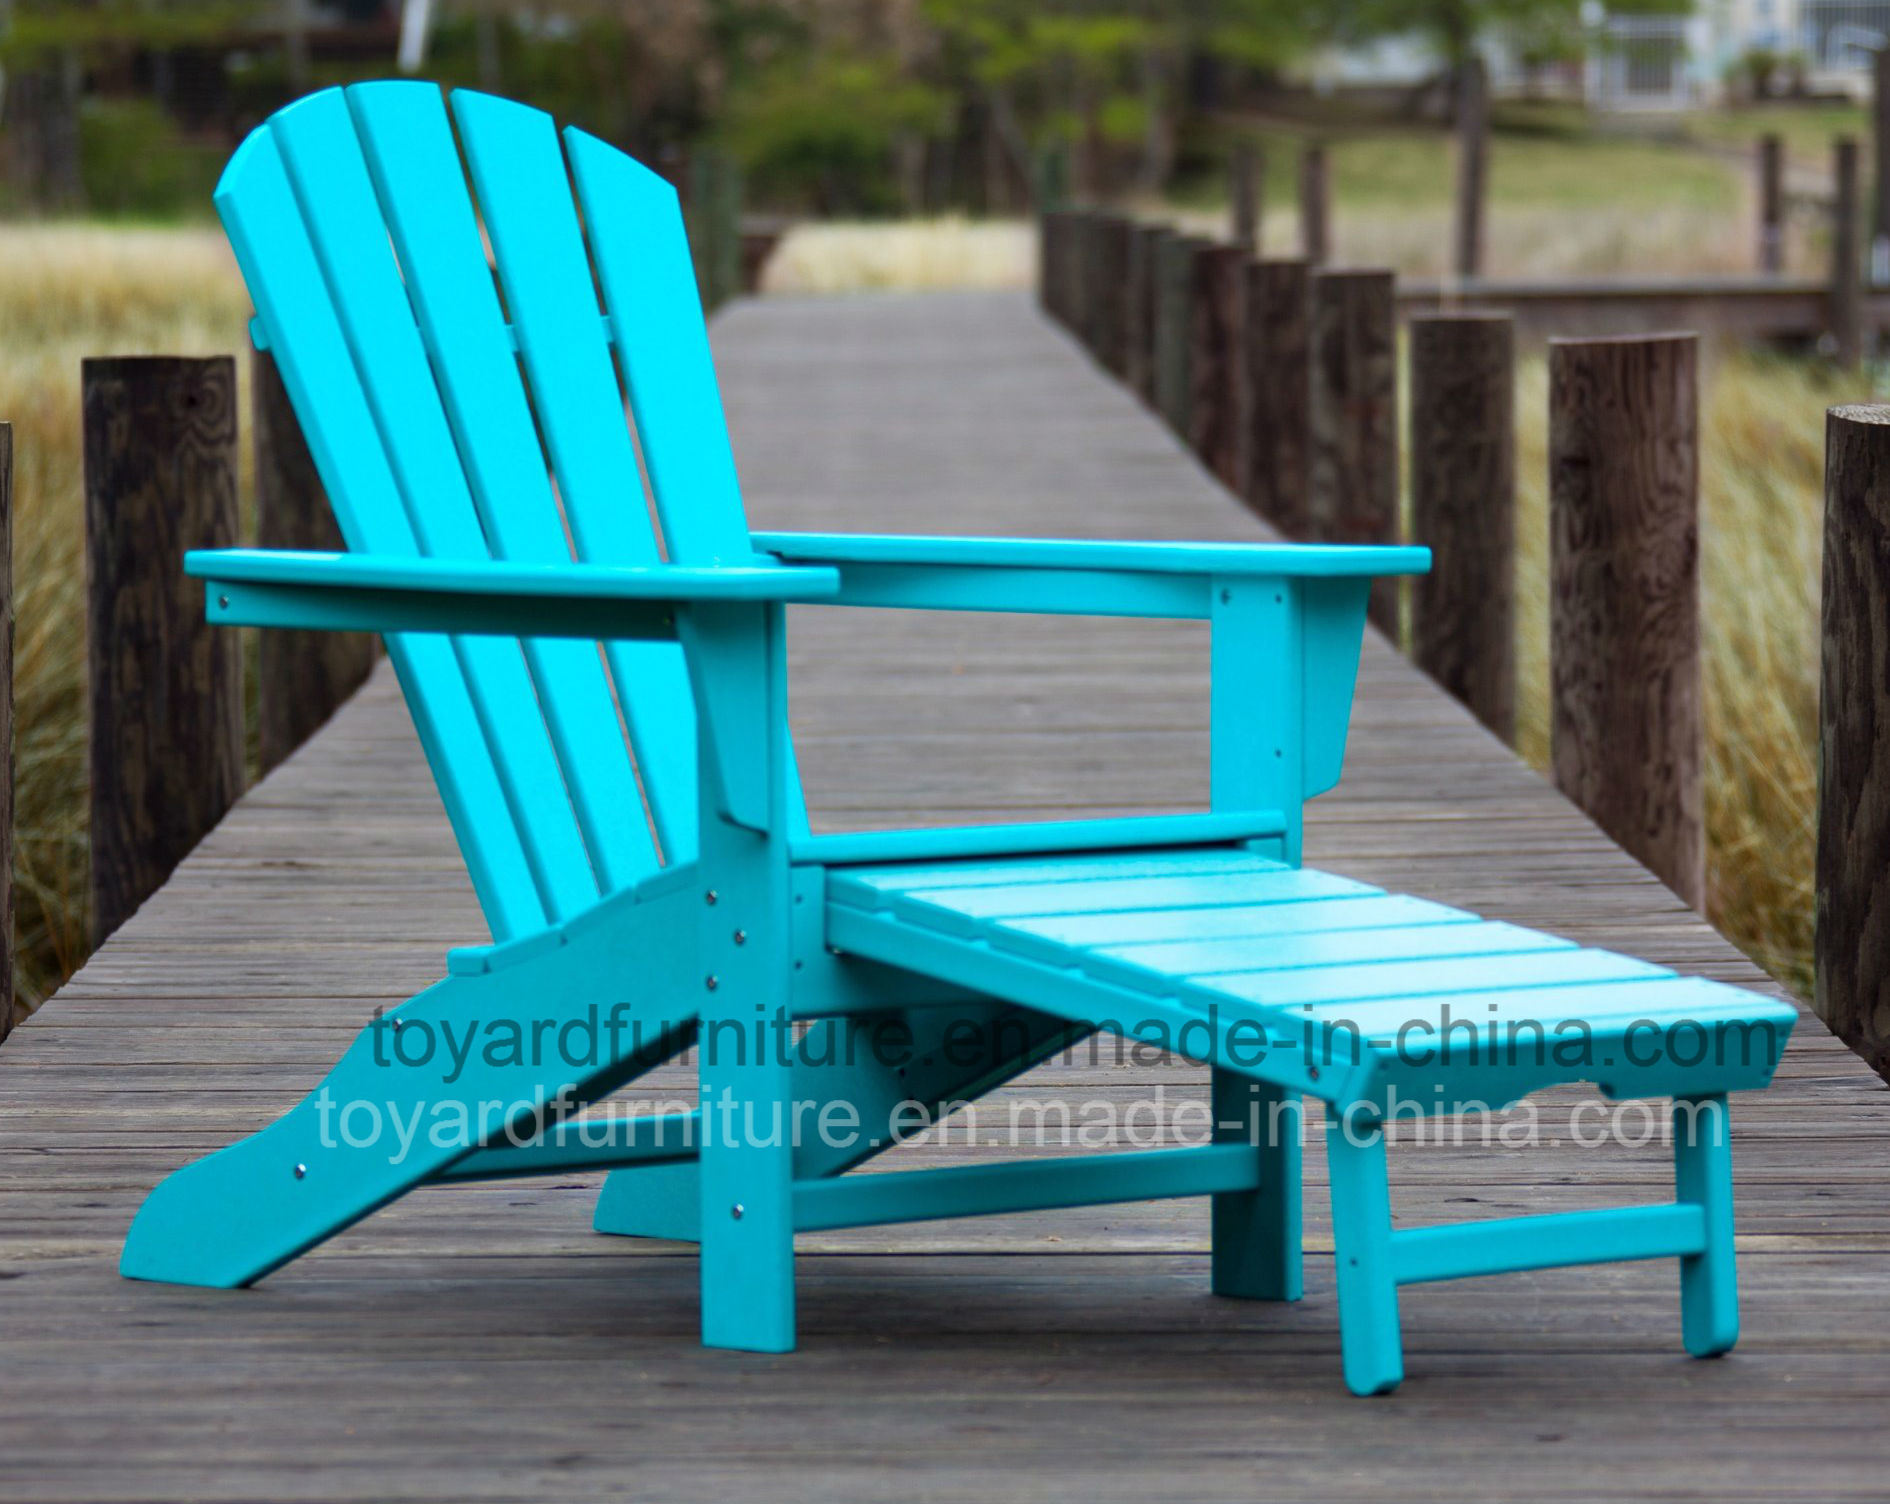 New Hot Patio Garden Furniture Blue Polywood Outdoor Deck Sun Chair with Adirondack Back